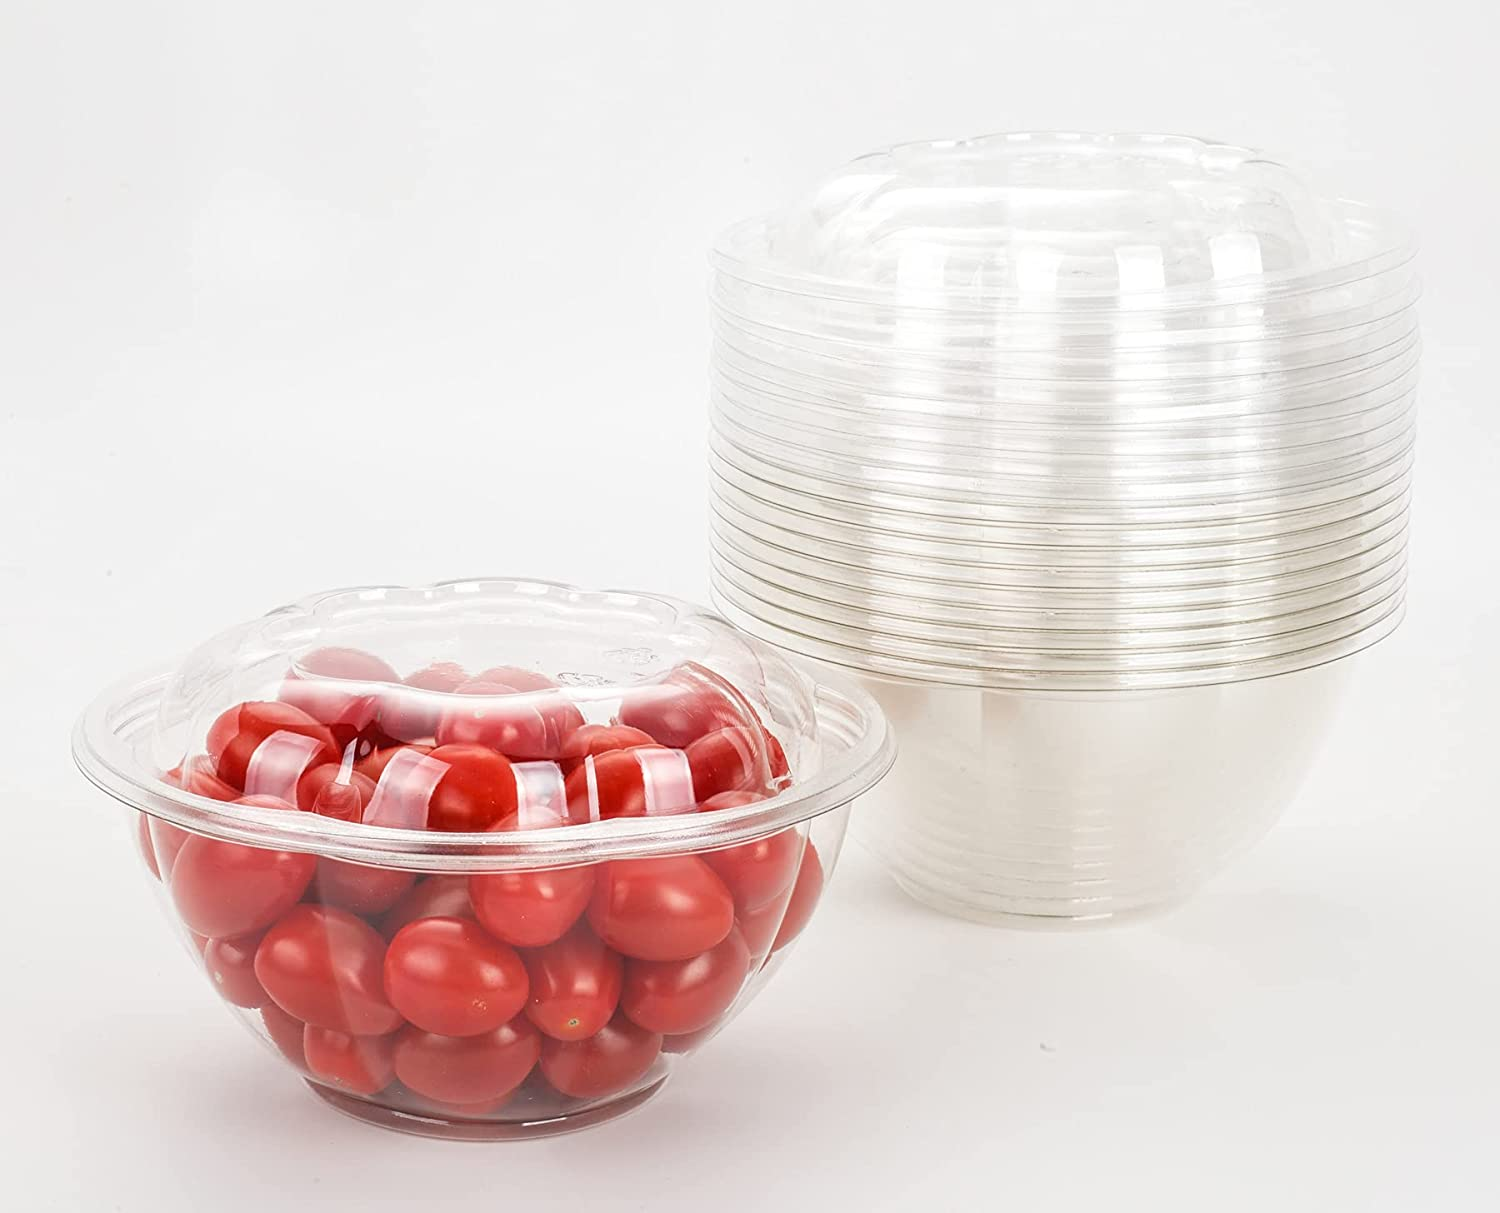 GOLDEN APPLE, 32oz-10sets, Disposable Plastic Serving Rose Bowls with Lids, Large Clear Plastic Disposable Salad Containers with Lids